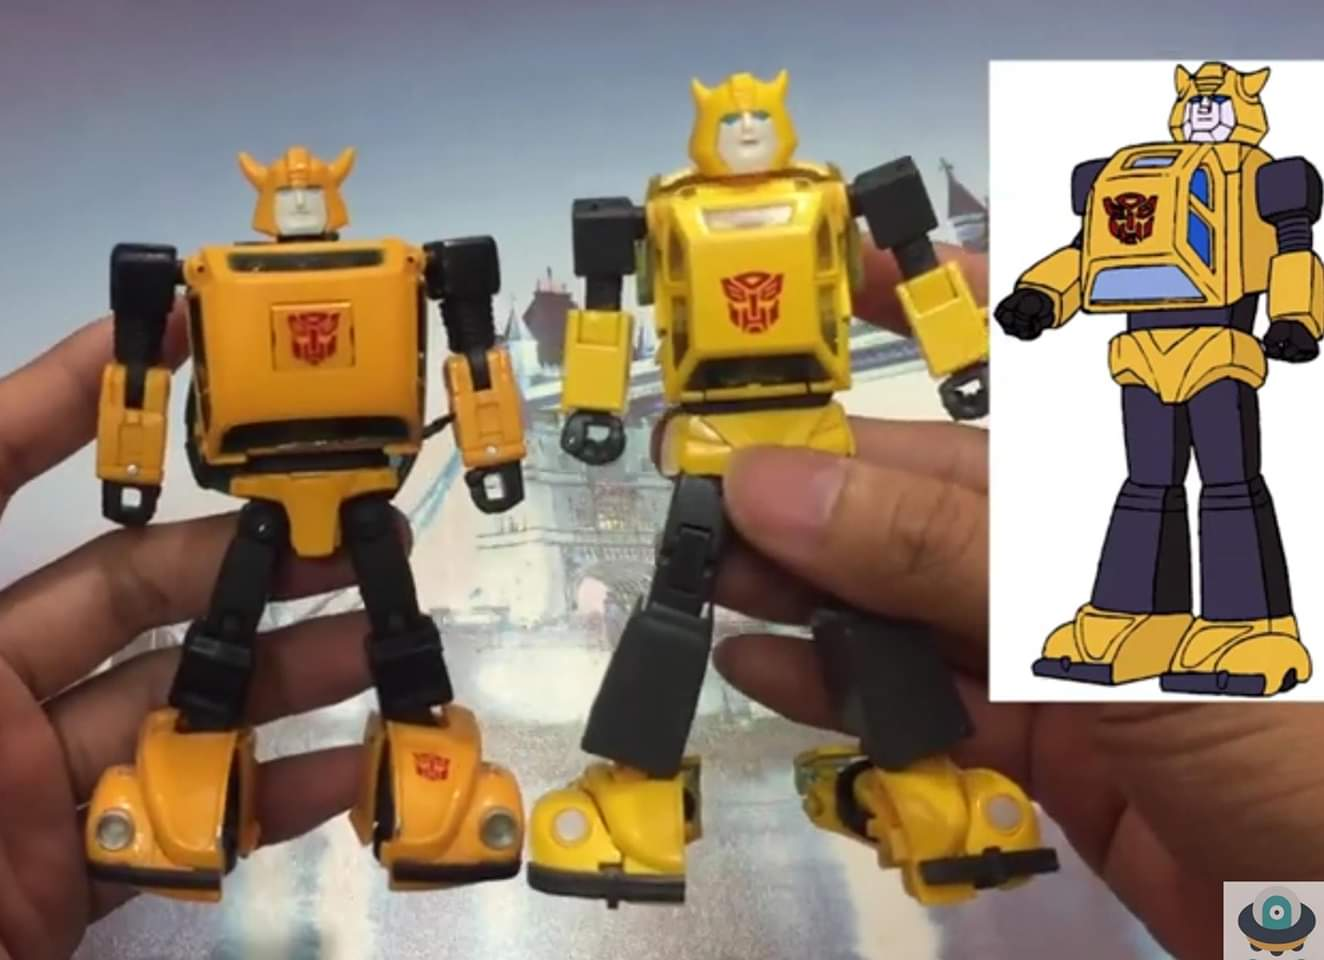 [Masterpiece] MP-45 Bumblebee/Bourdon v2.0 - Page 2 PTn0m3kg_o